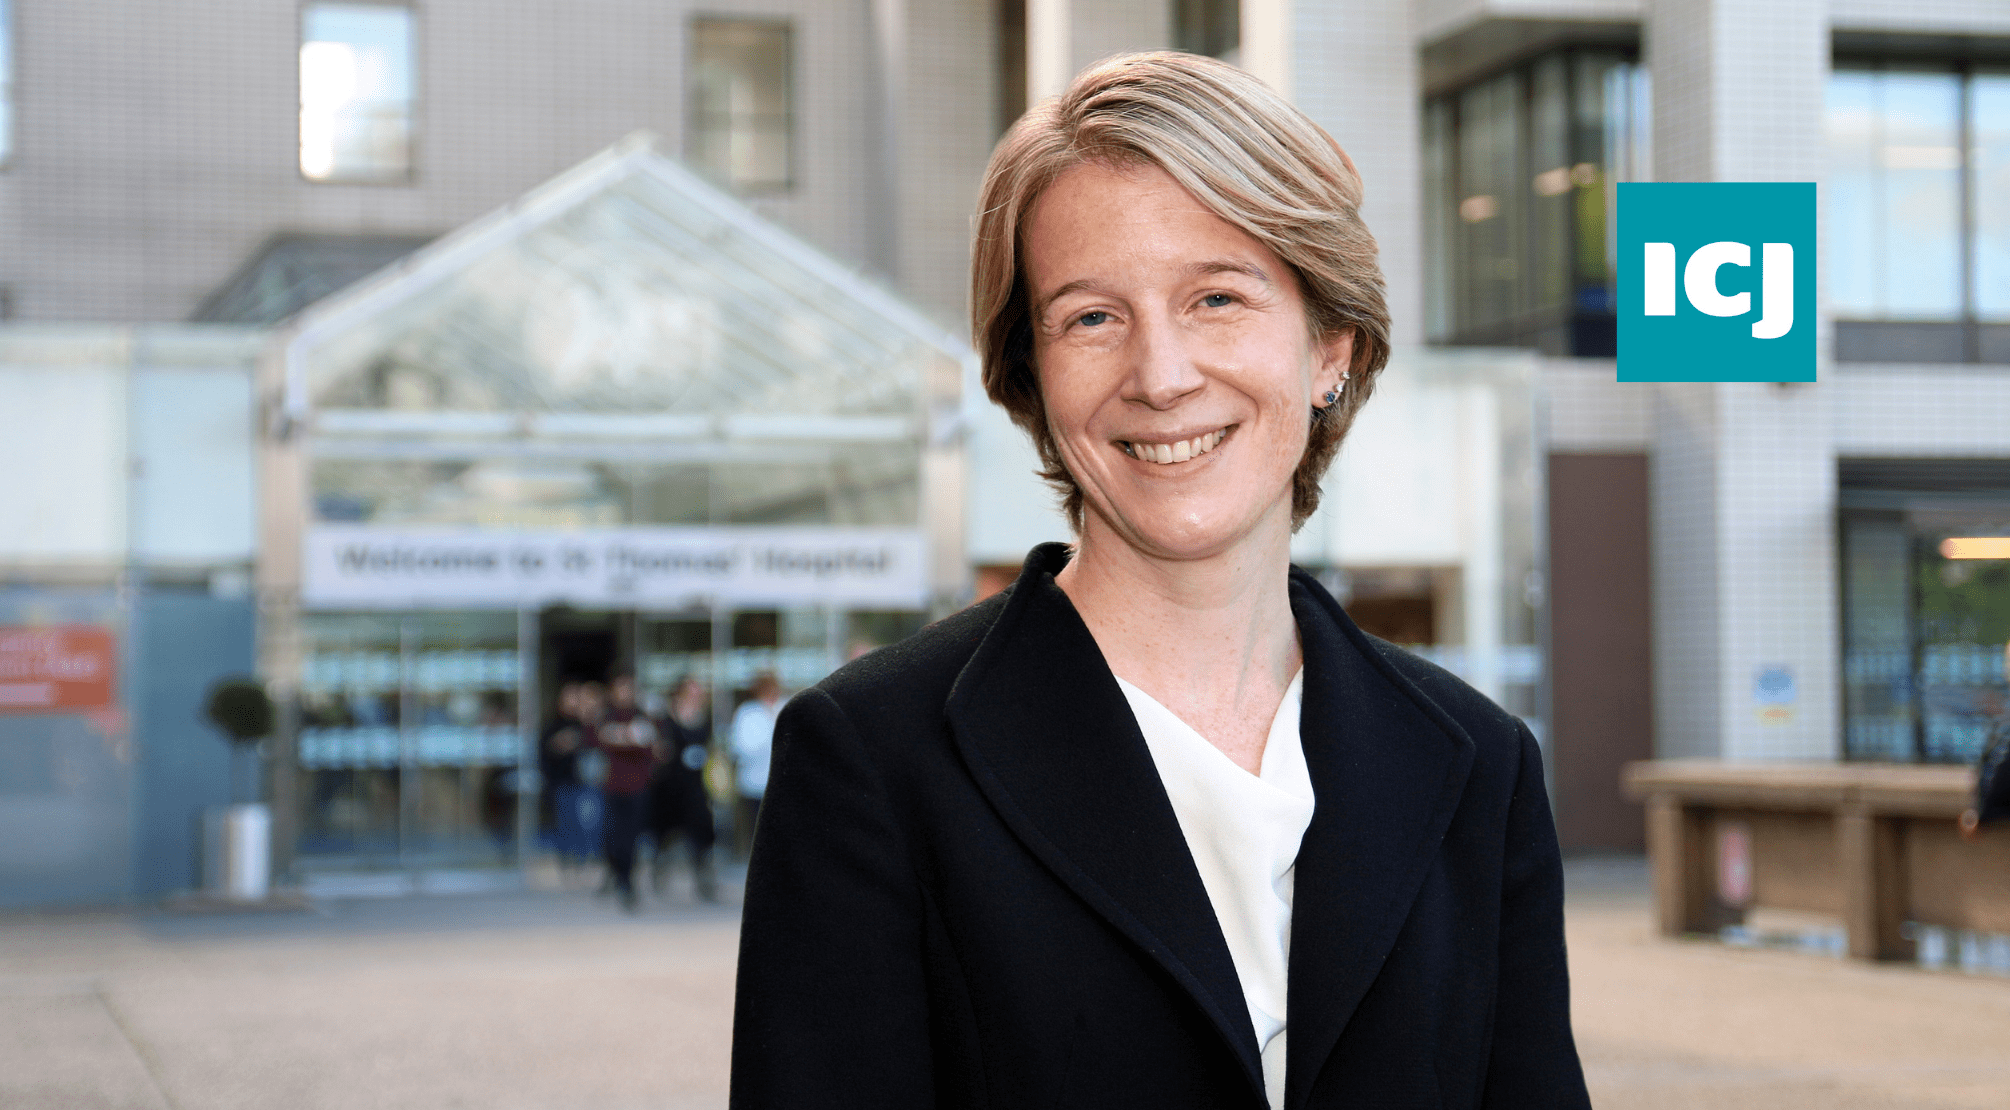 Amanda Pritchard set to be appointed NHS England Chief Executive